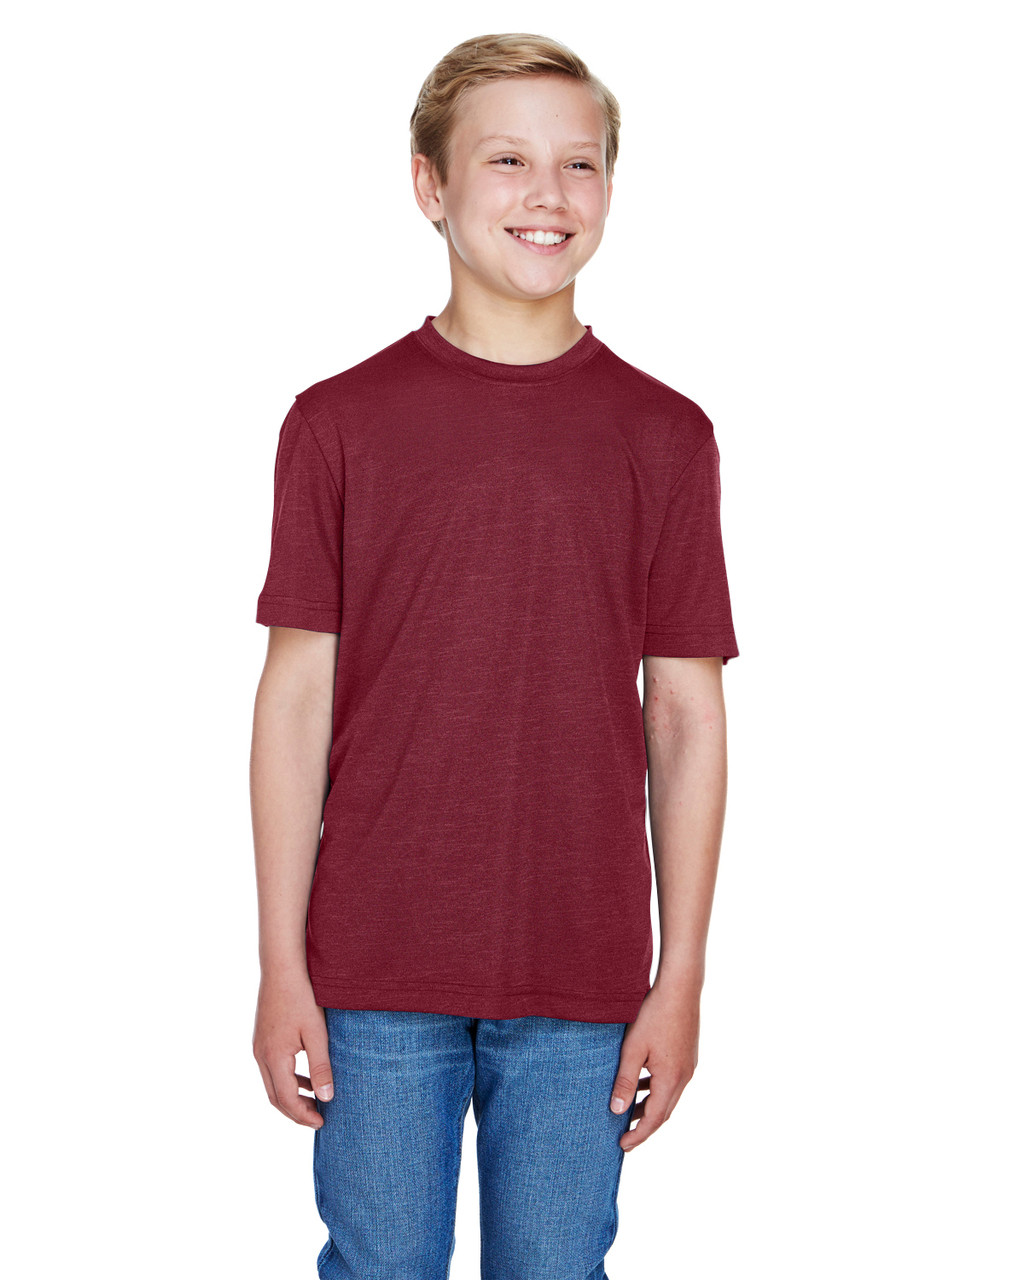 Sport Maroon Heather - TT11HY Team 365 Youth Sonic Heather Performance T-Shirt | BlankClothing.ca